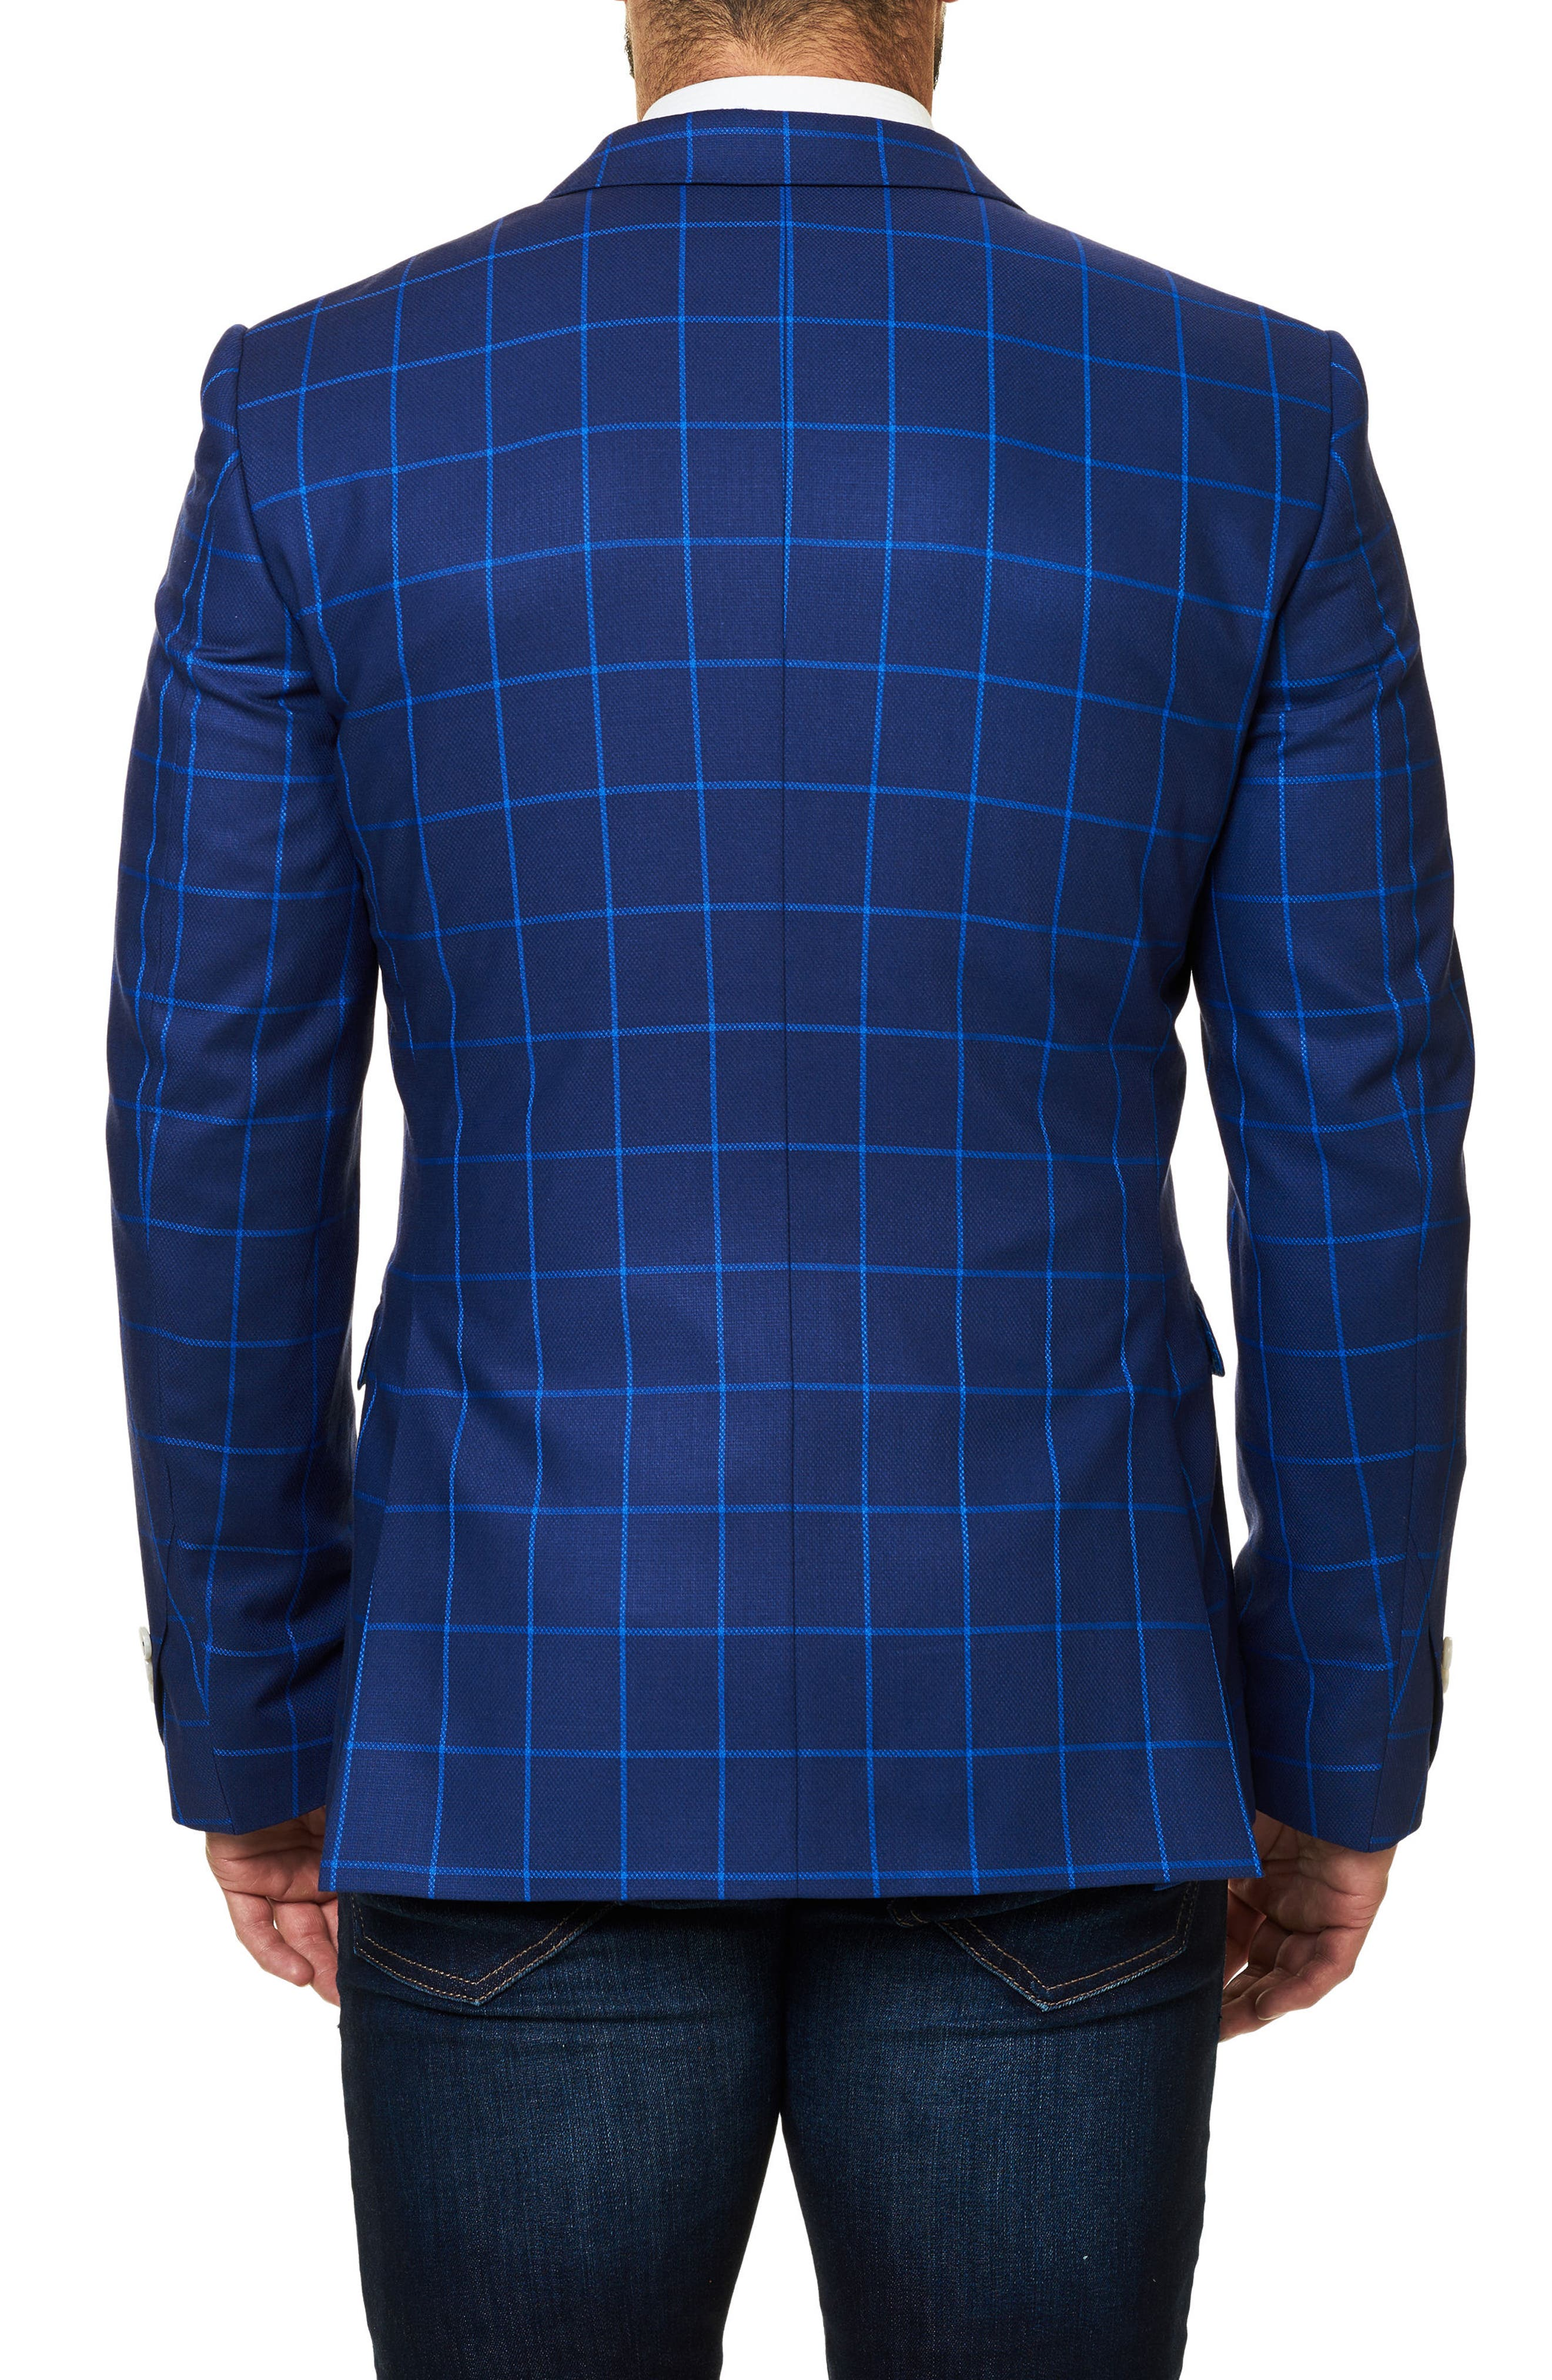 Descarte Windowpane Sport Coat,                             Alternate thumbnail 2, color,                             420